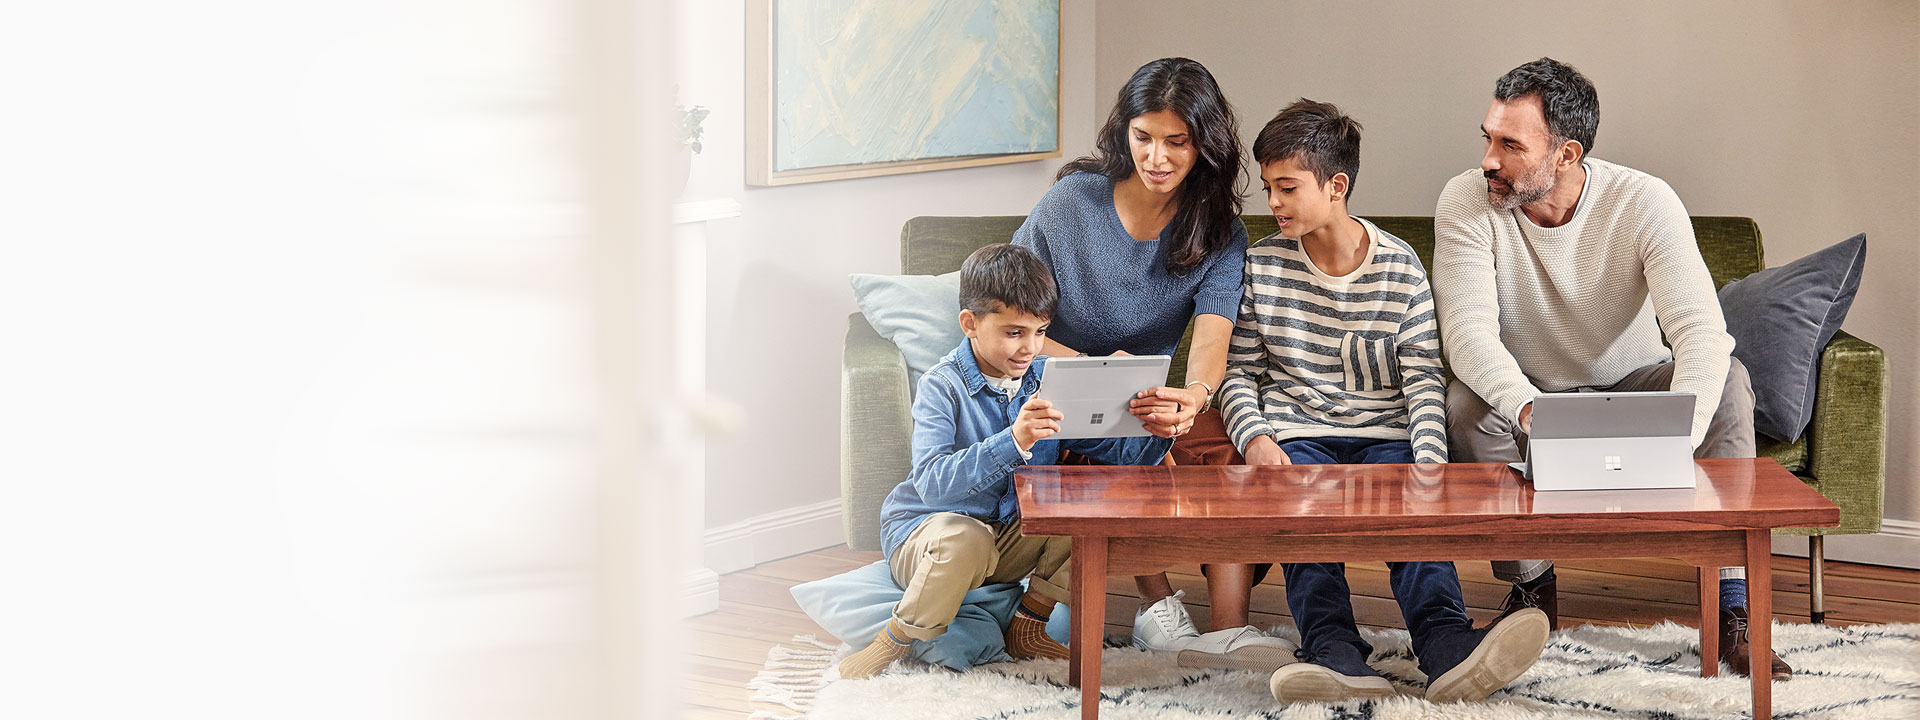 Man, woman, and 2 boys using two Microsoft Surface computers while sitting on a couch at home